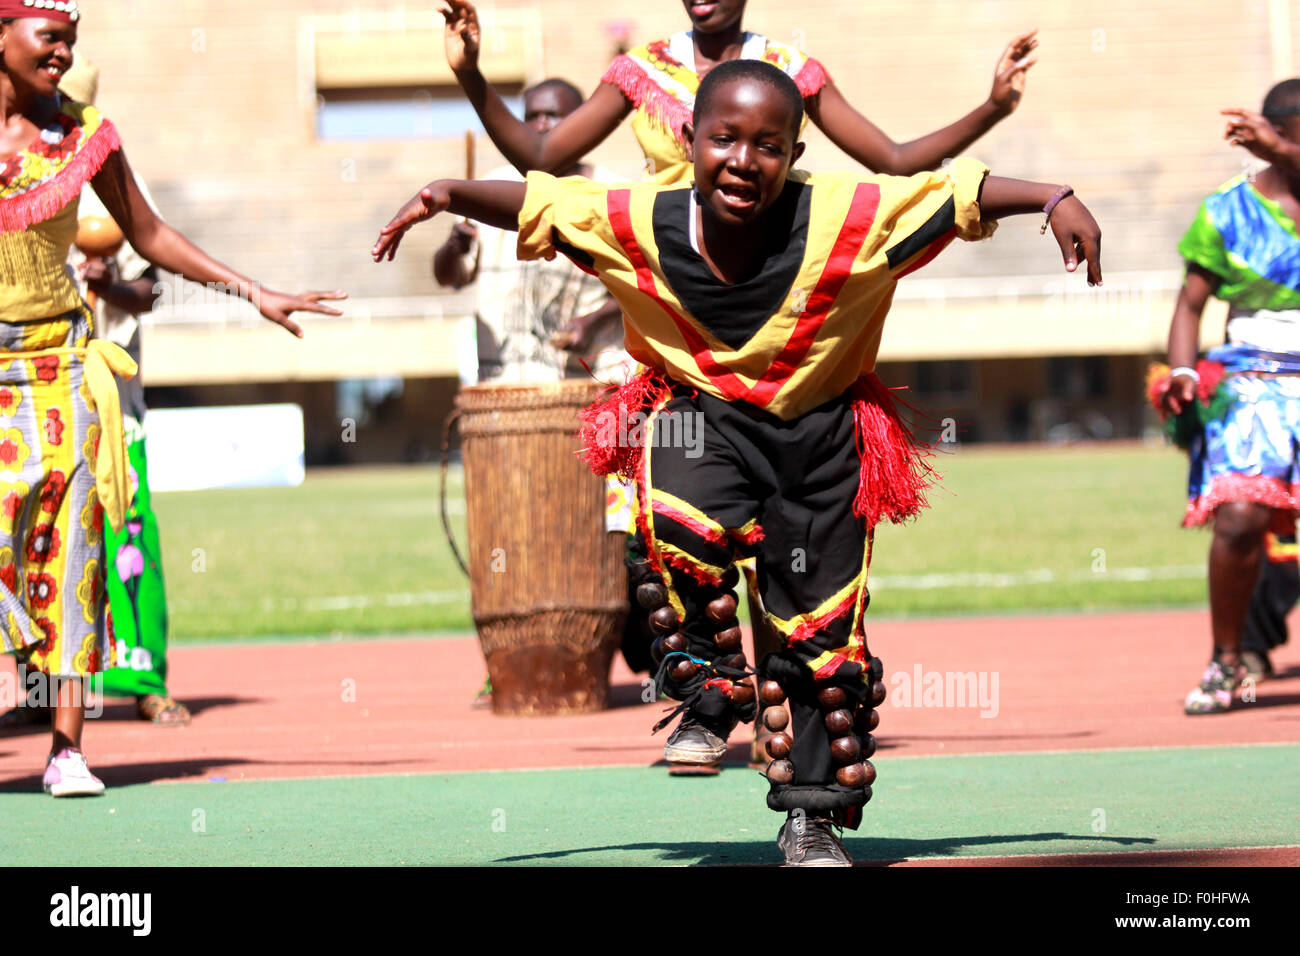 Kampala, Uganda. 16th August, 2015. Traditional dancers perform during the launch of the East Africa Military Games Stock Photo